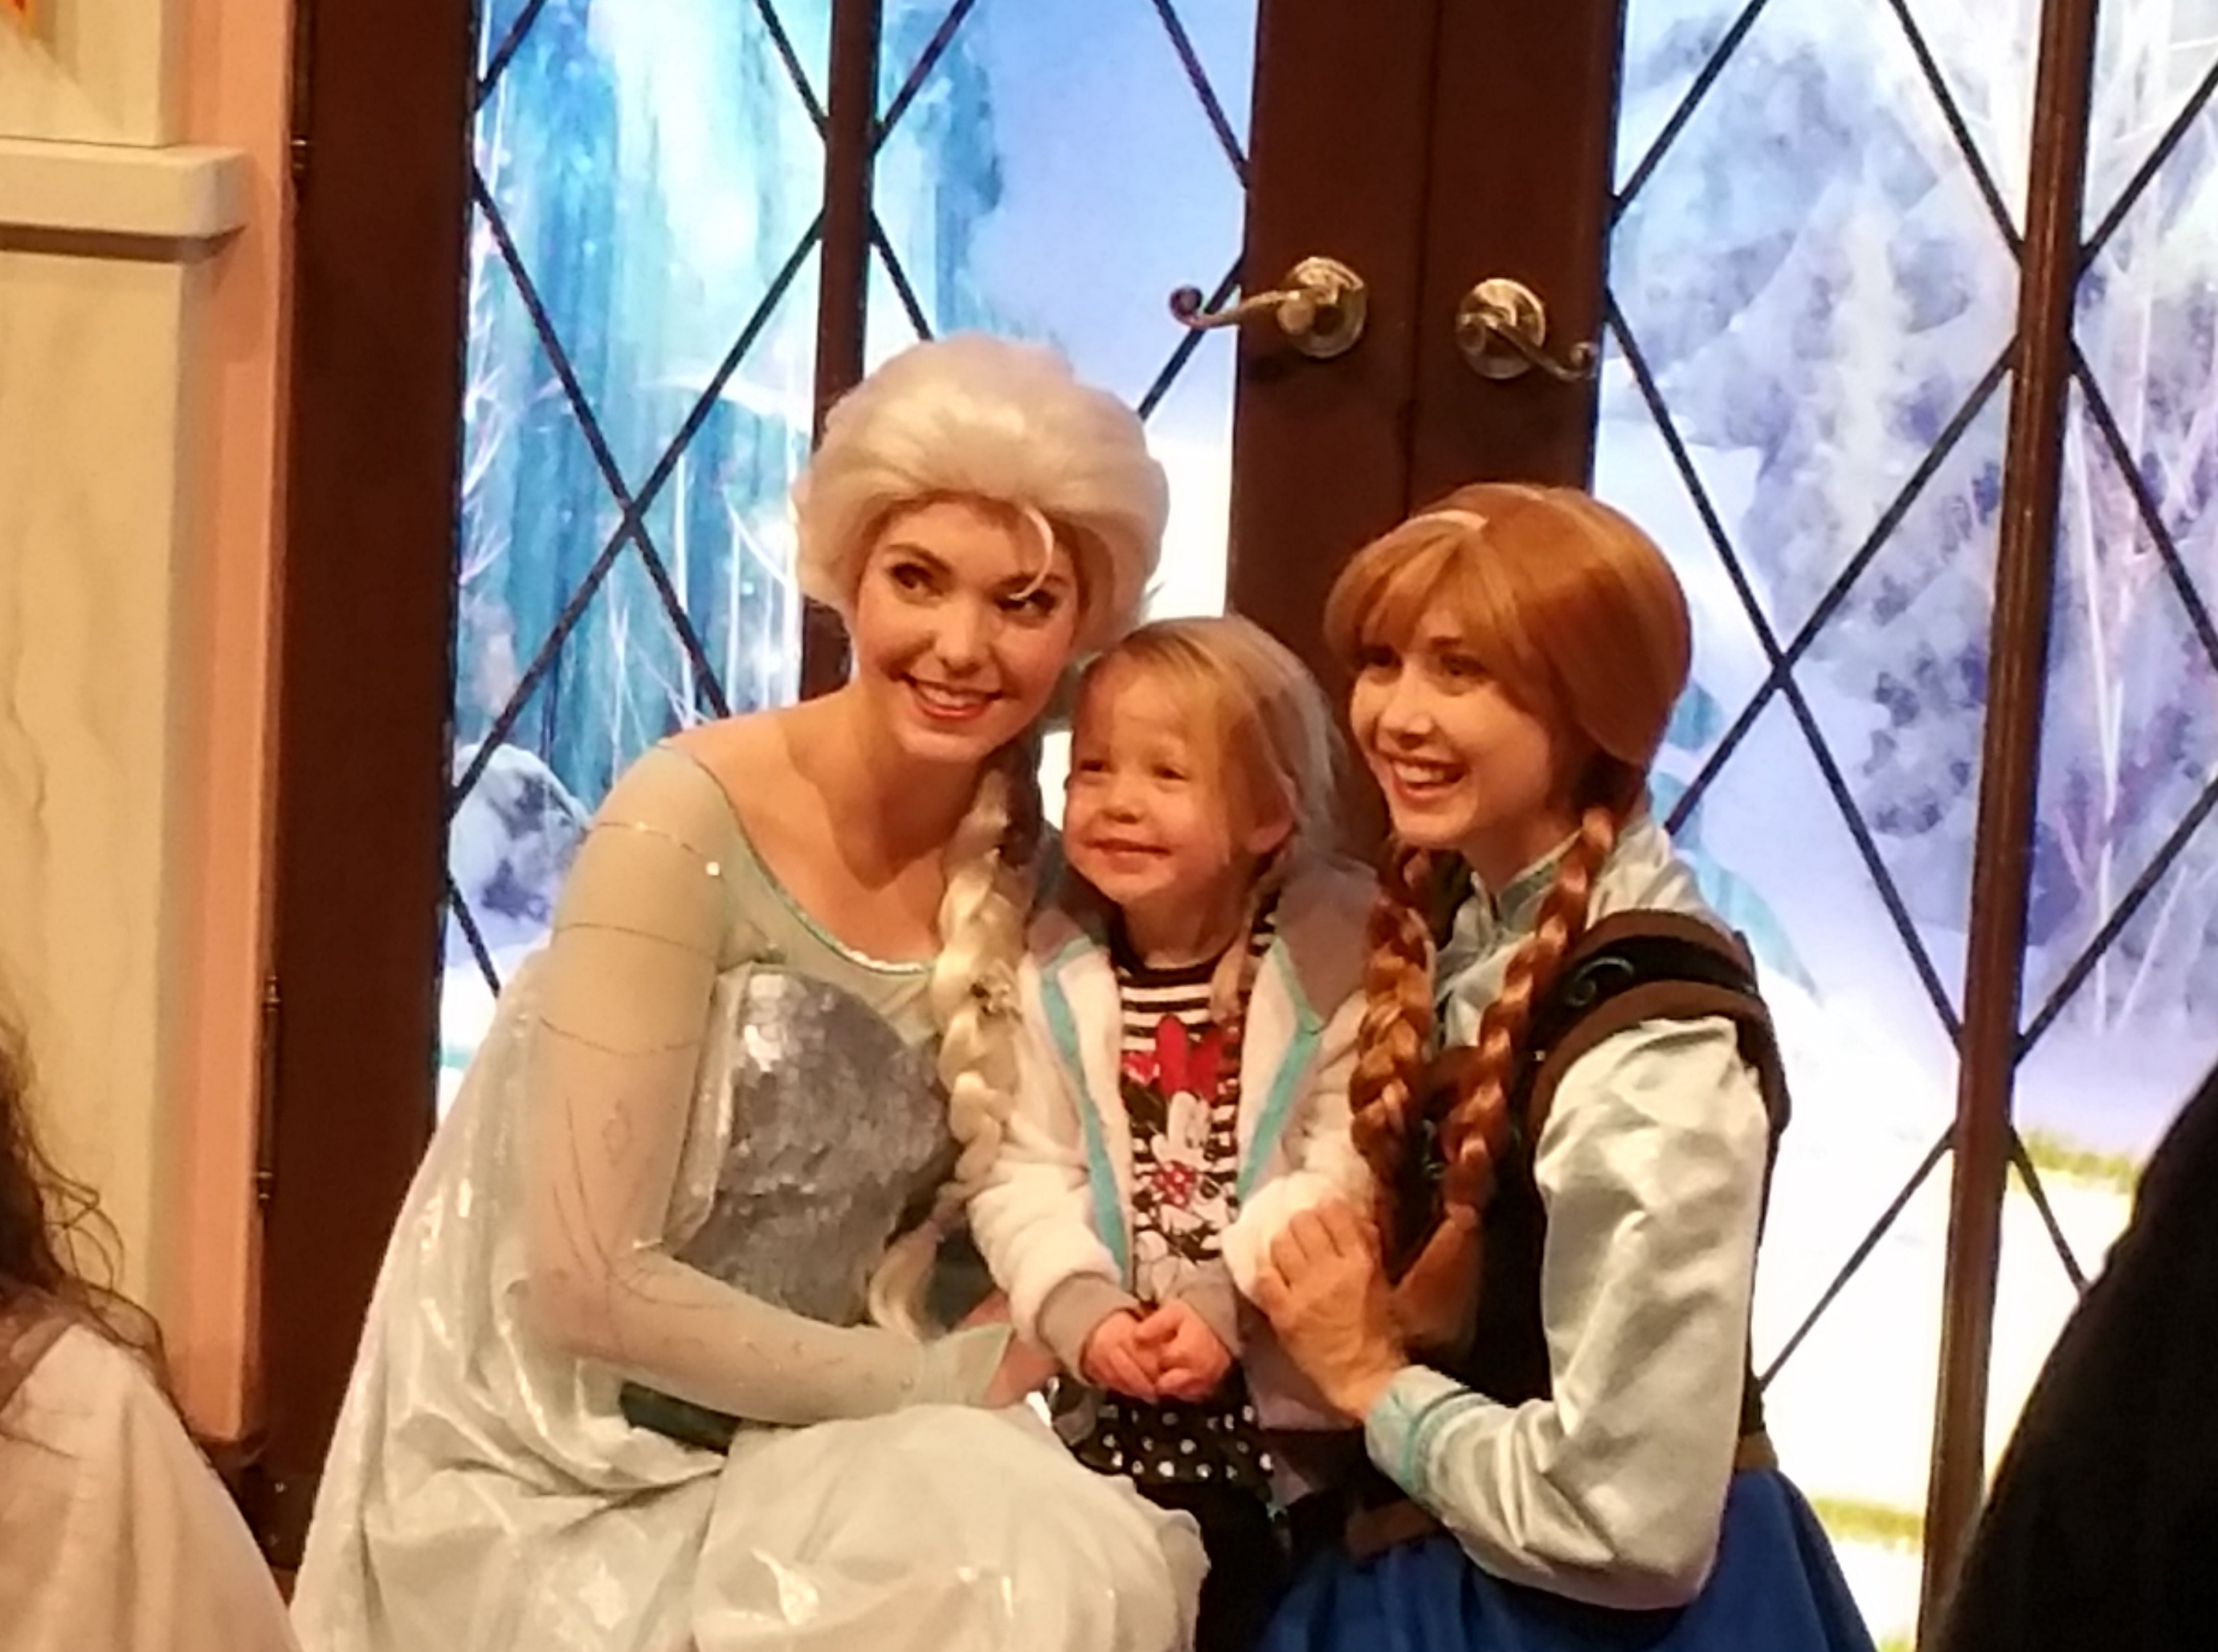 Whats new at disneyland and california adventure themeparks cool off during a meet ngreet with queen elsa and princess anna of frozen disneyland m4hsunfo